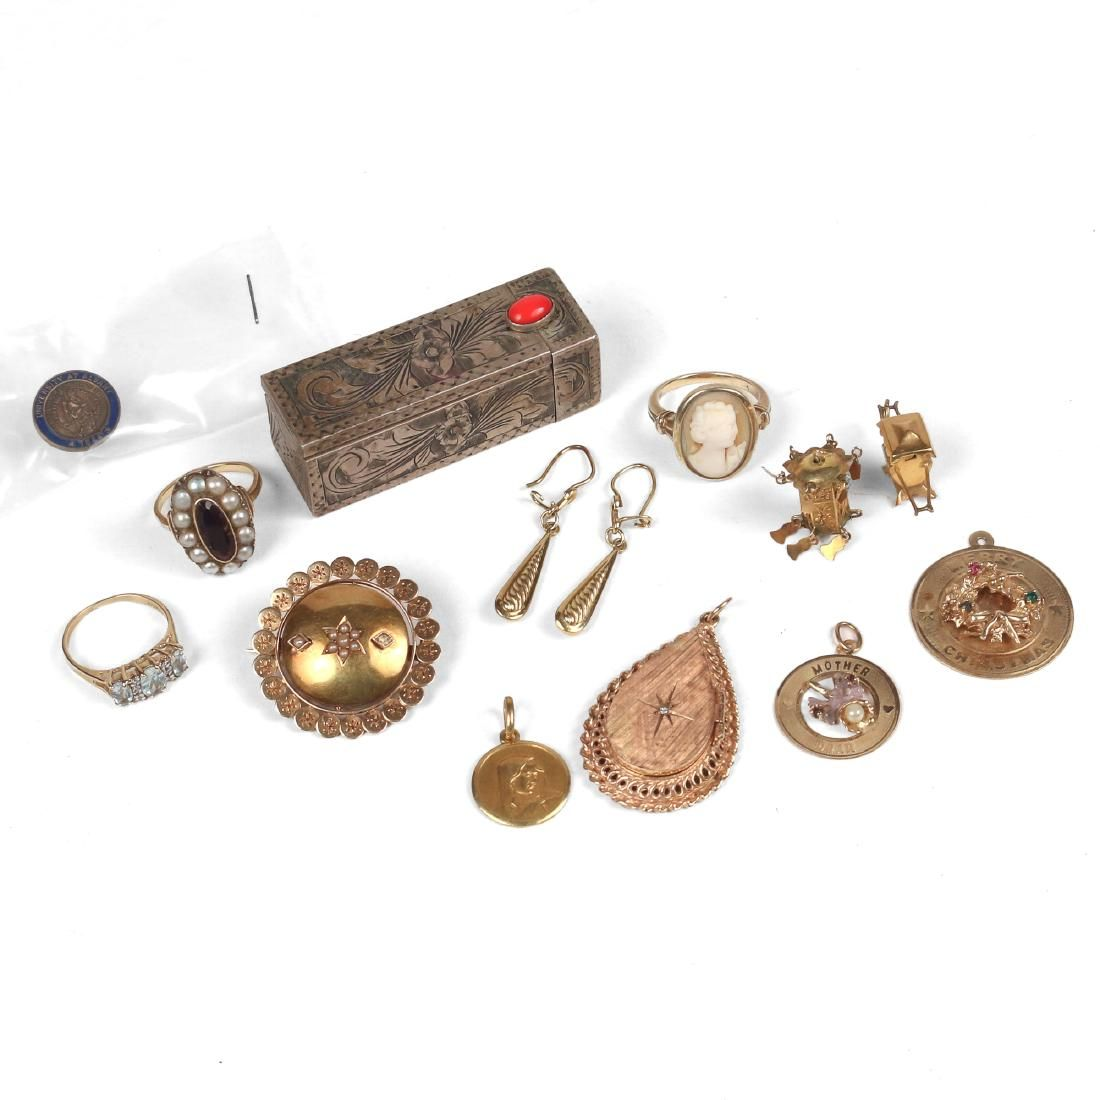 MISC. GOLD JEWELRY & OTHER